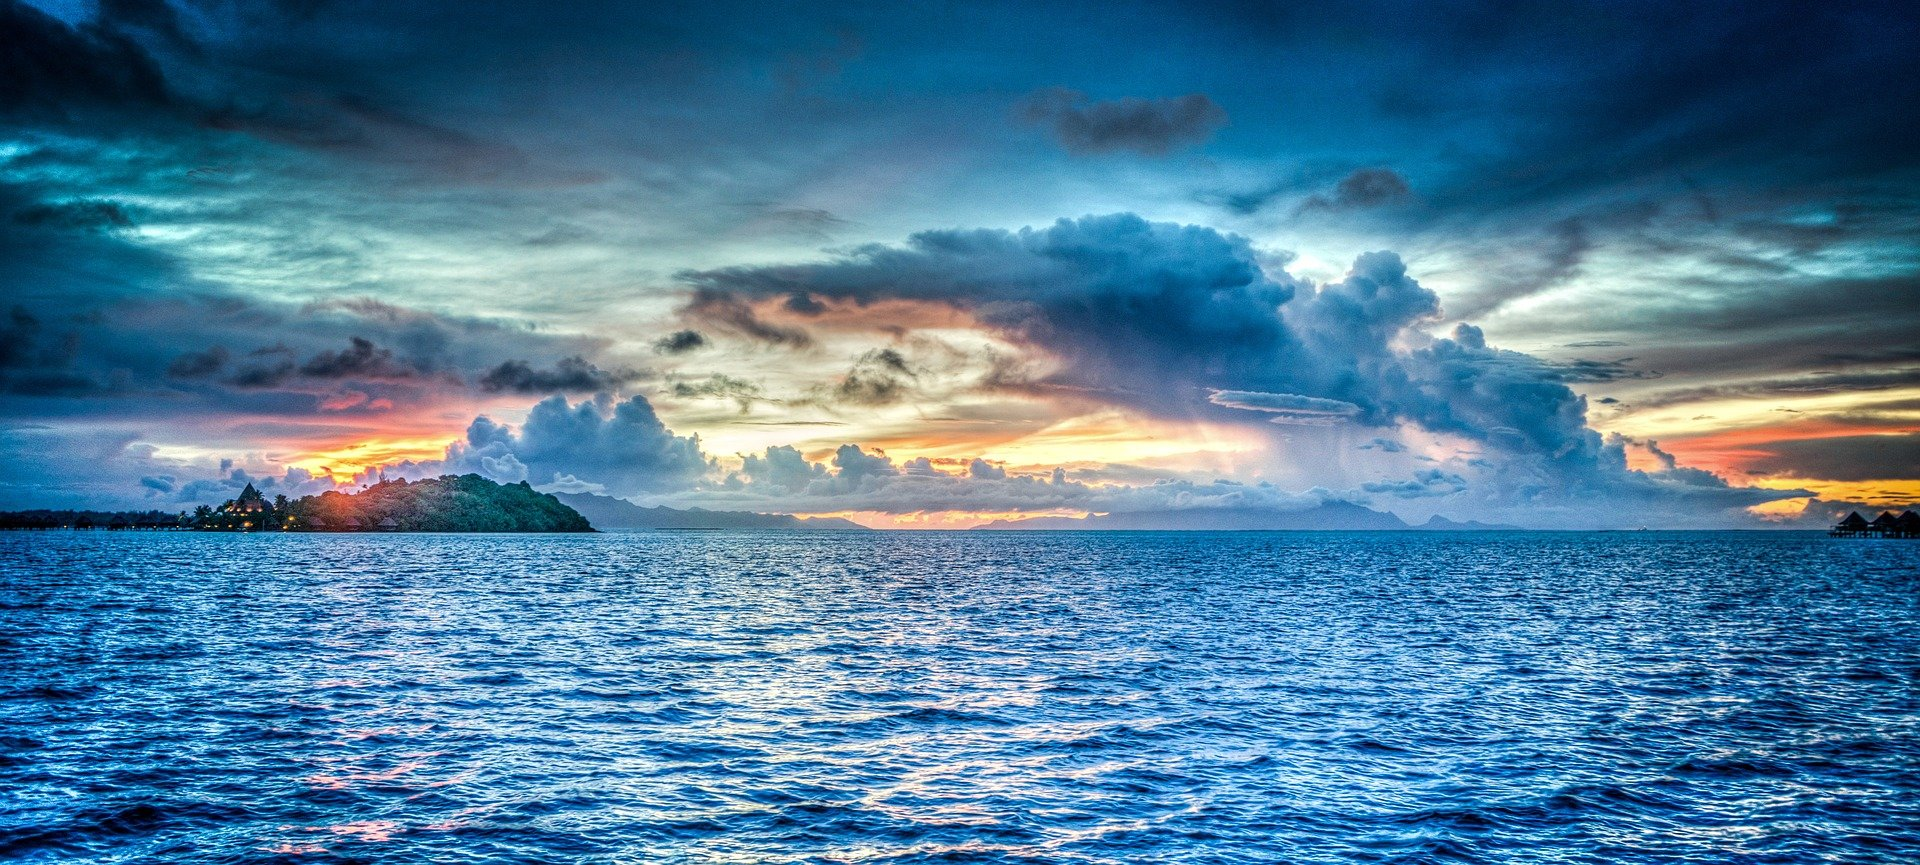 ocean acidification to hit levels not seen in 14 million years